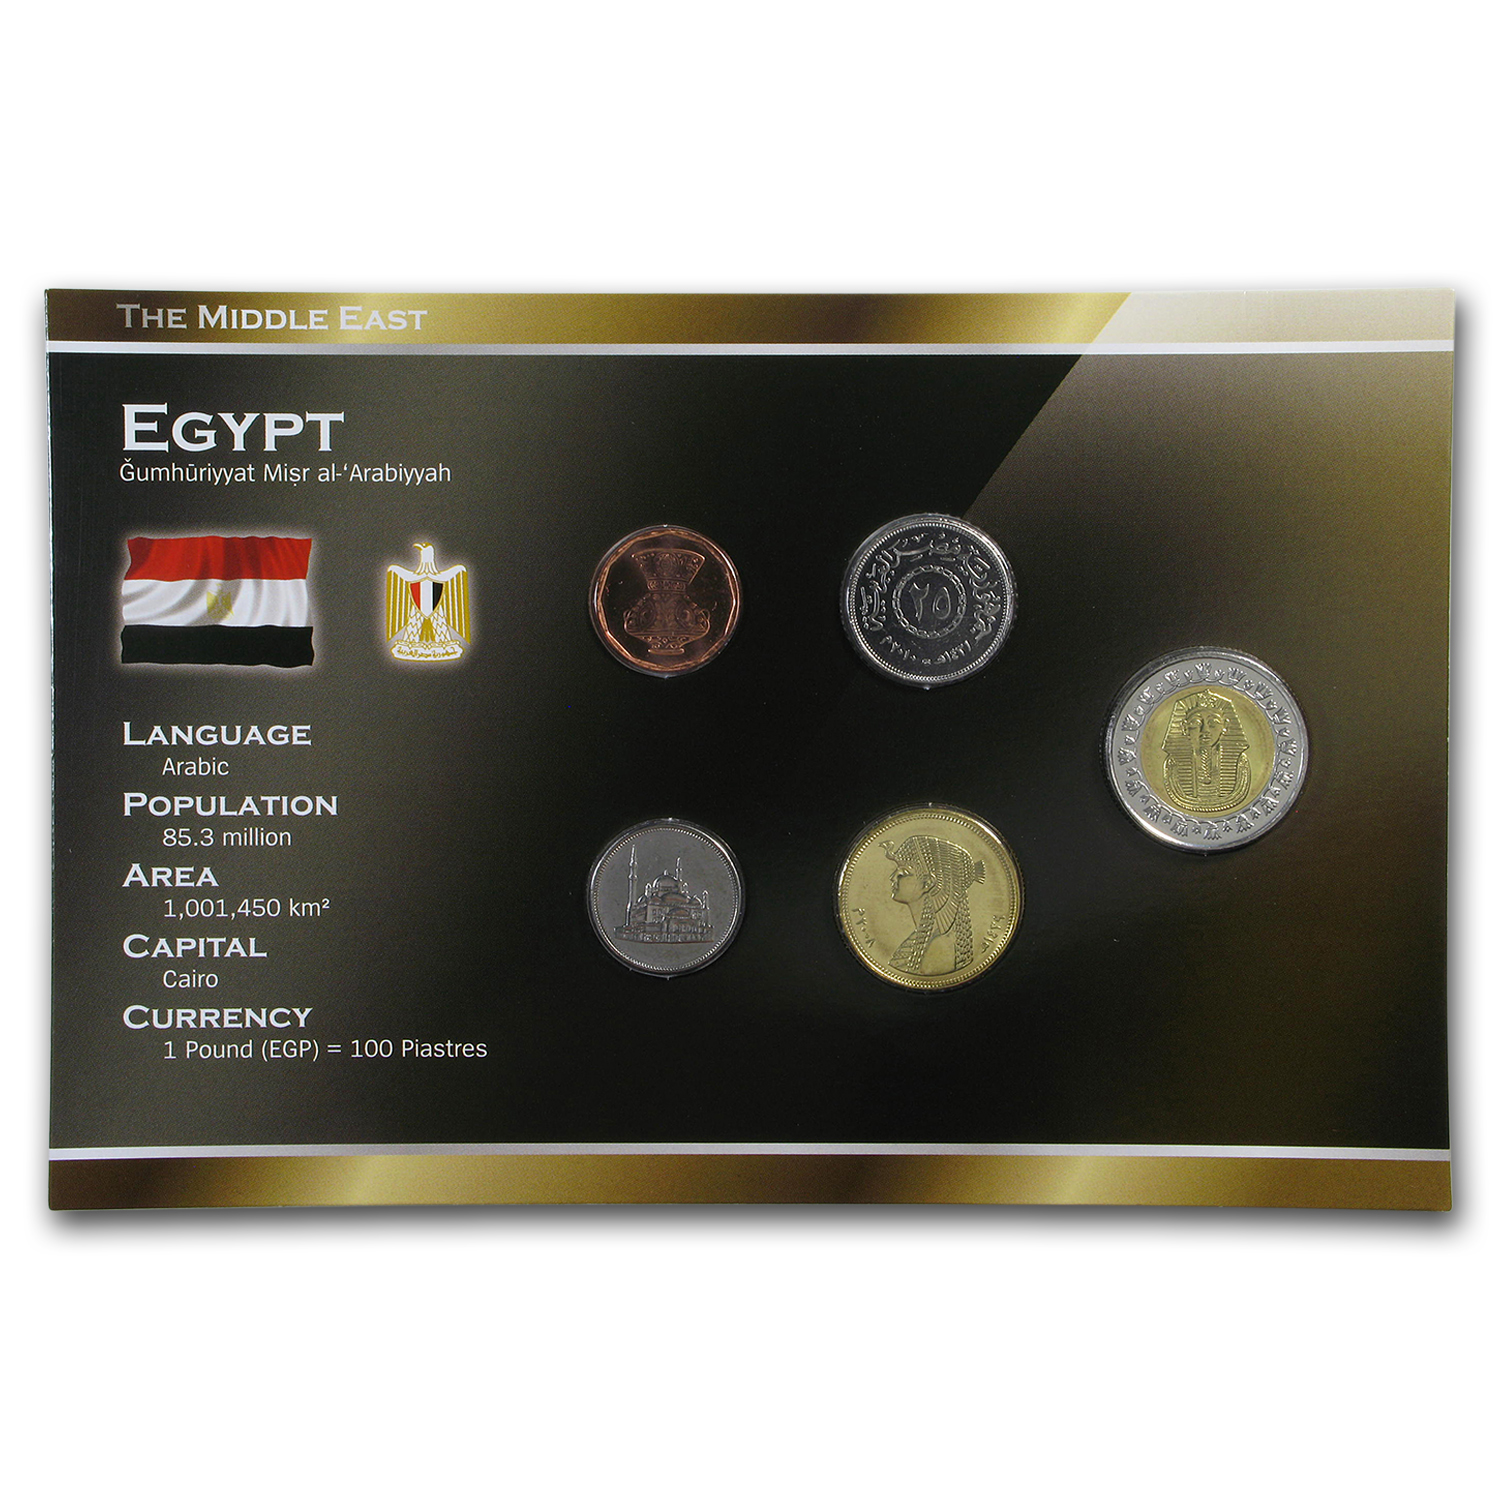 Egypt 1984-2010 1 Piastre-1 Pound Coin Set BU